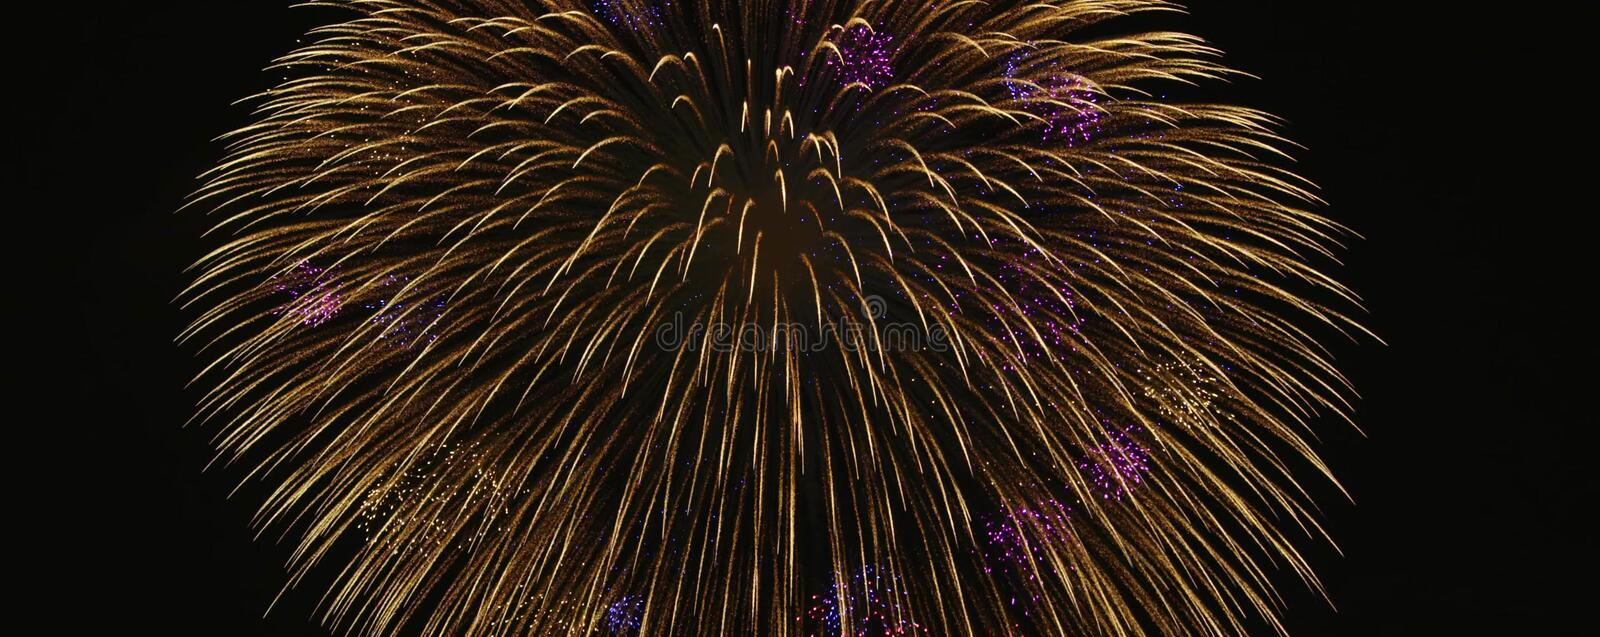 Japanese Superb view fireworks stock images